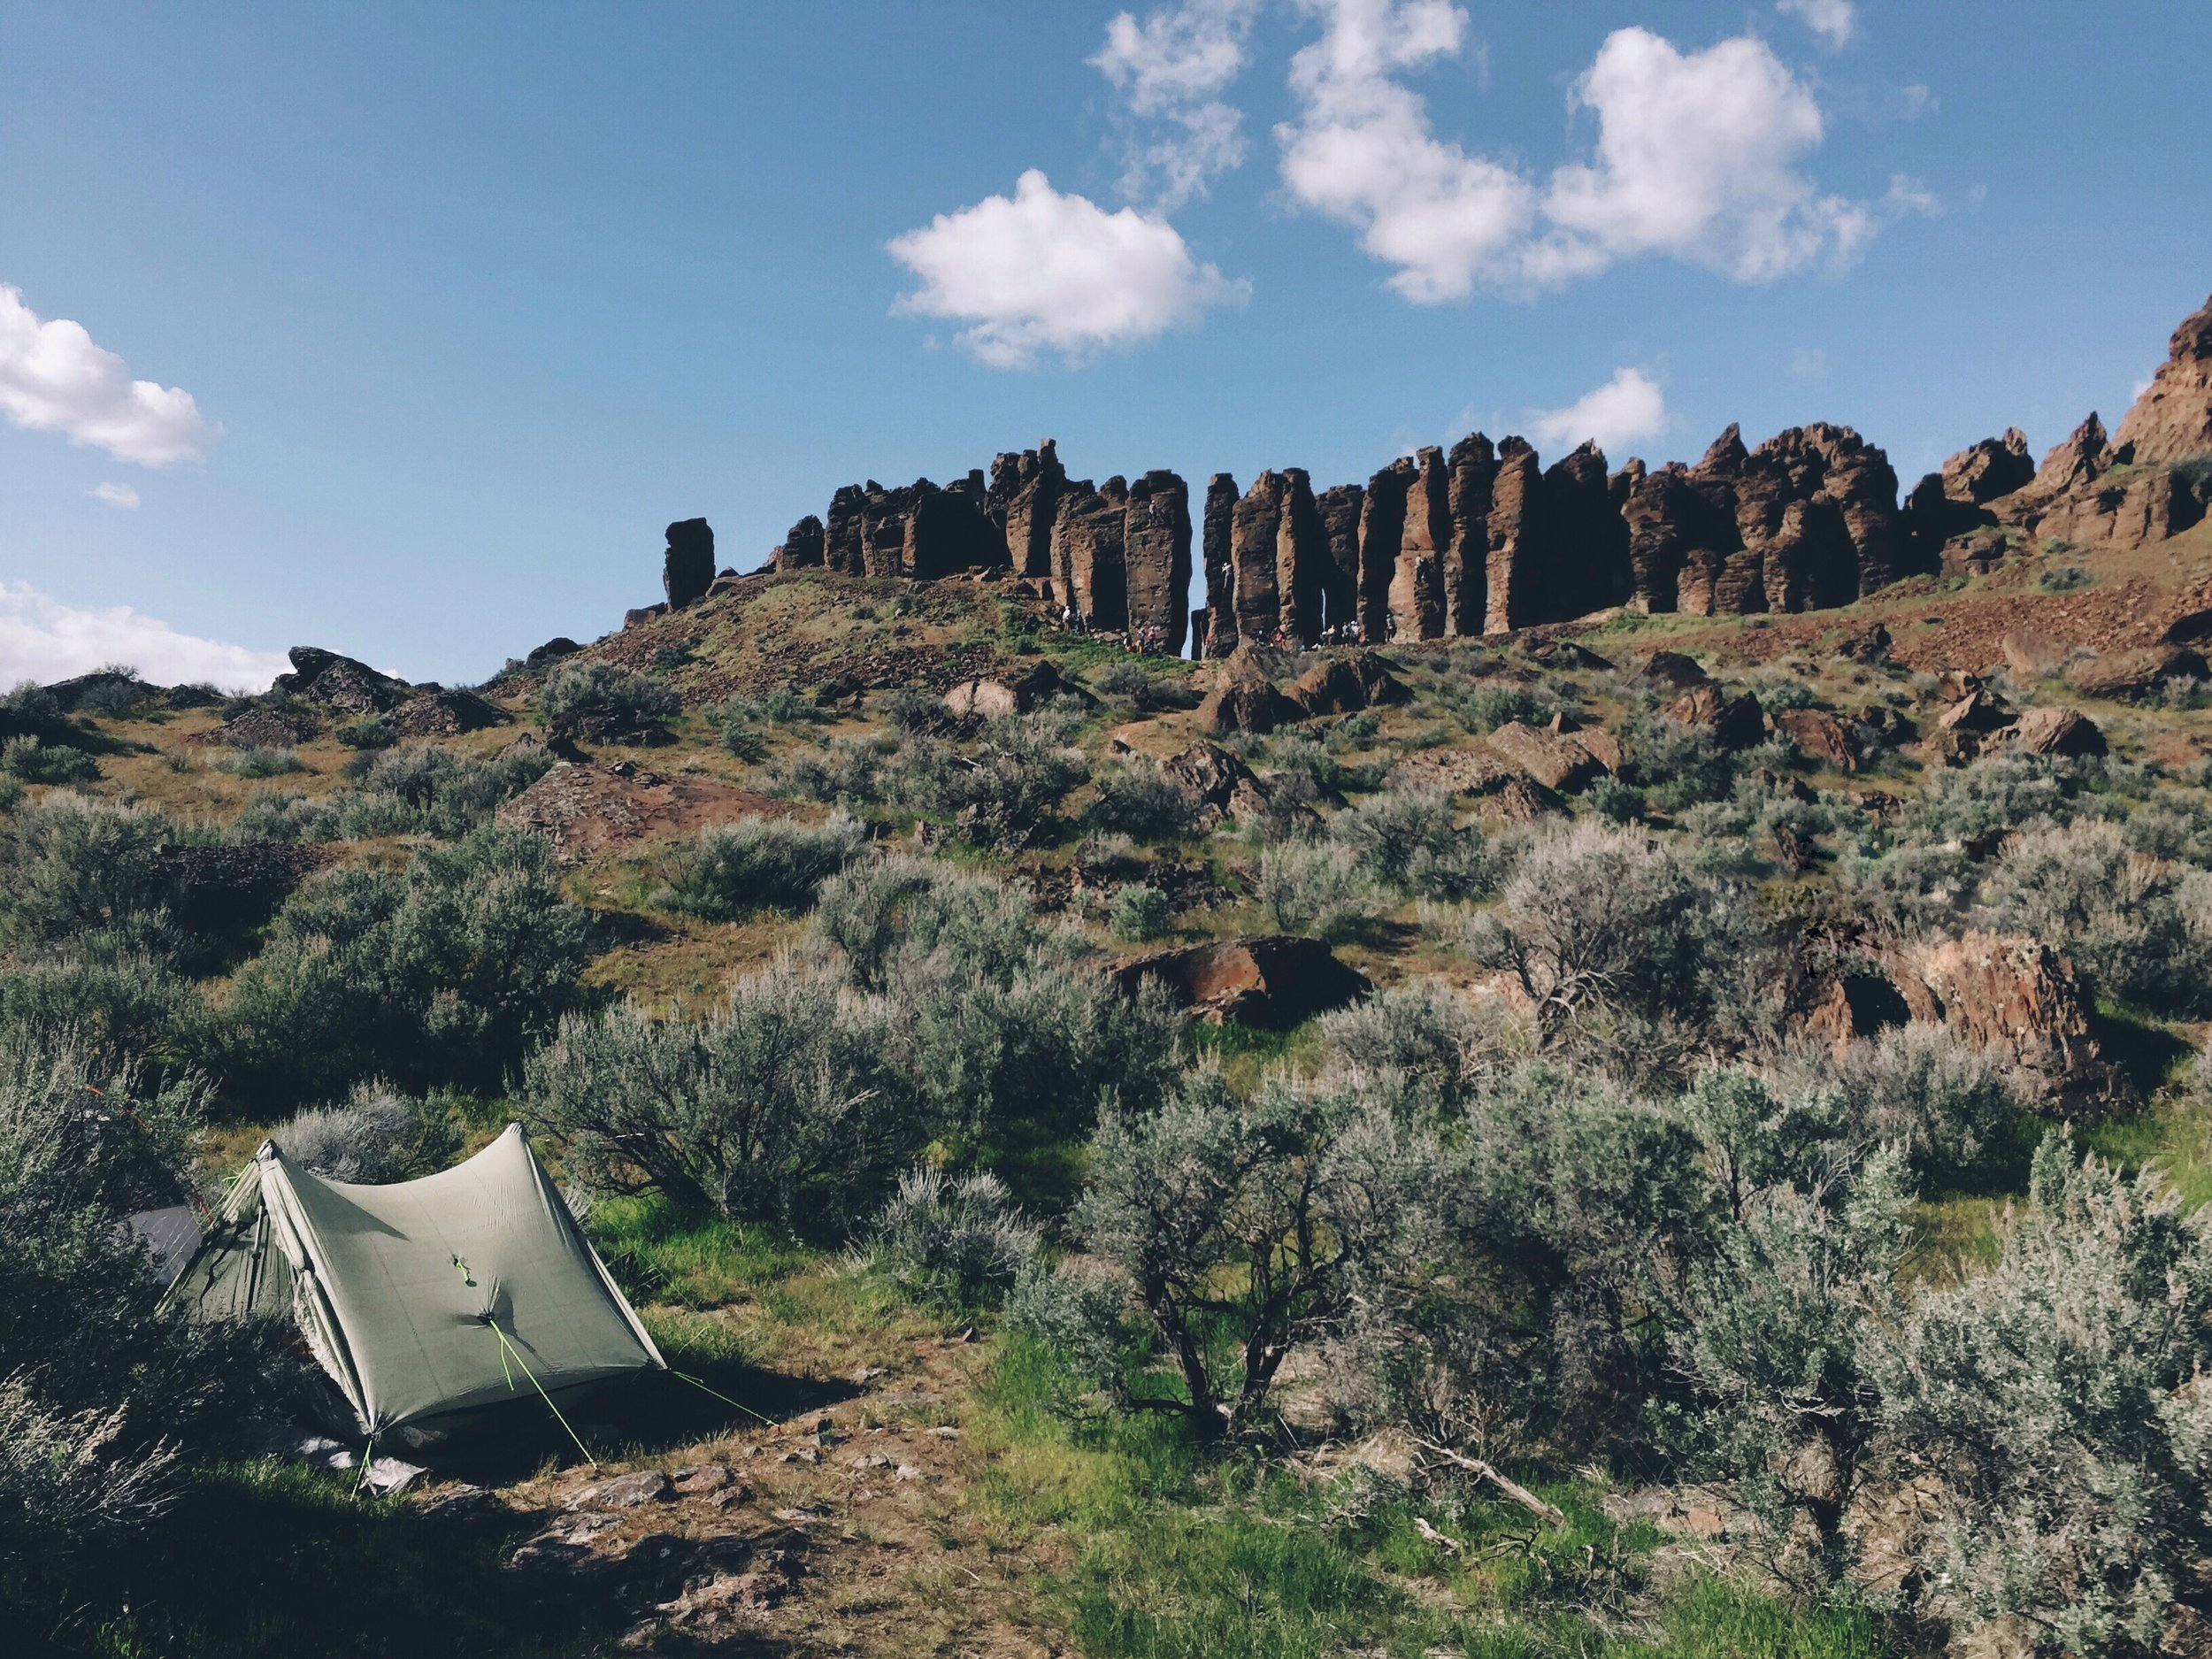 Camping at Vantage beneath the Feathers.